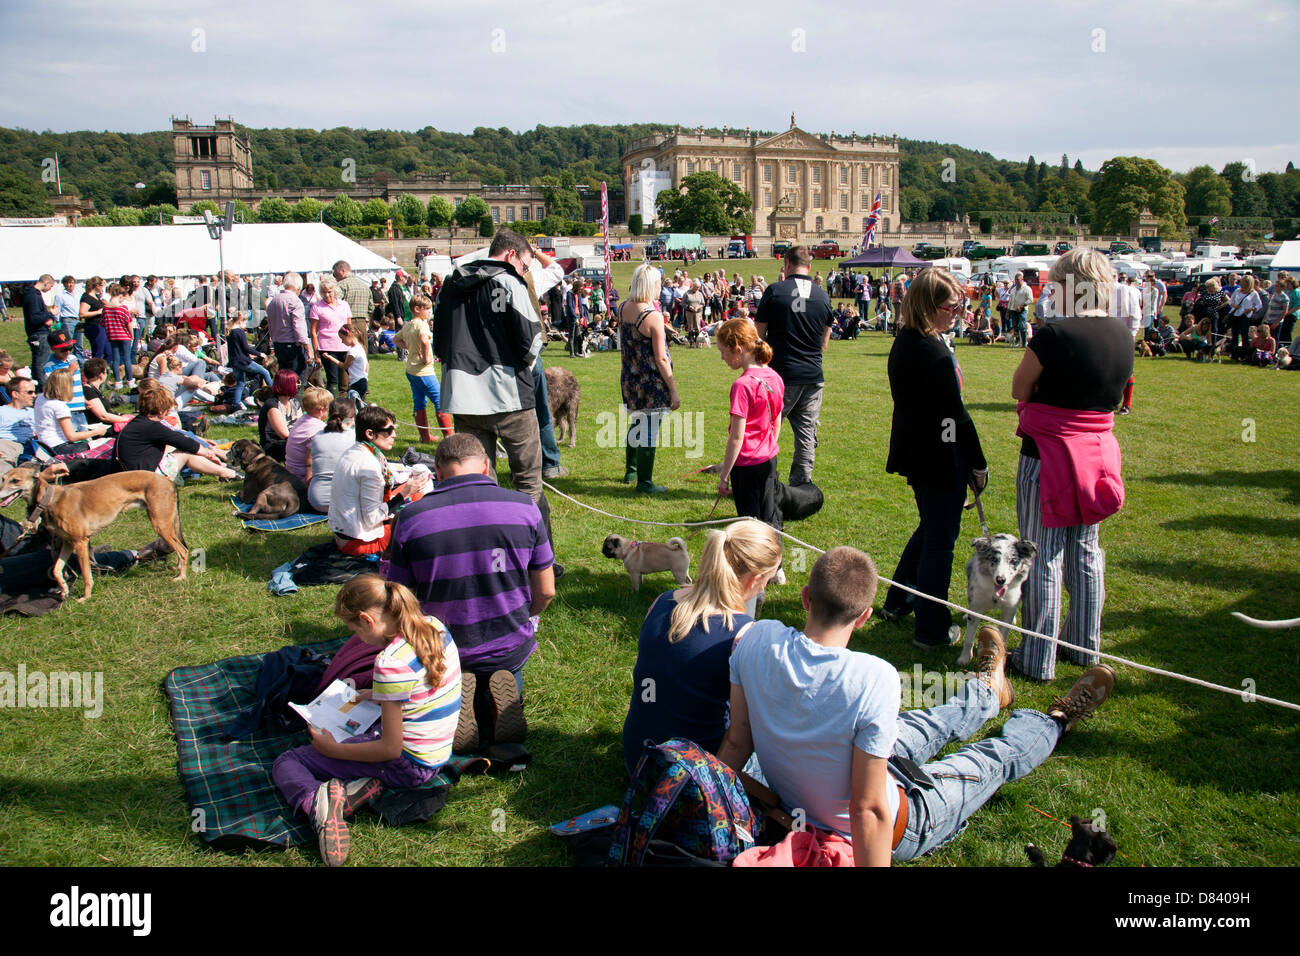 The Chatsworth Game Fair, Derbyshire, England, U.K. - Stock Image